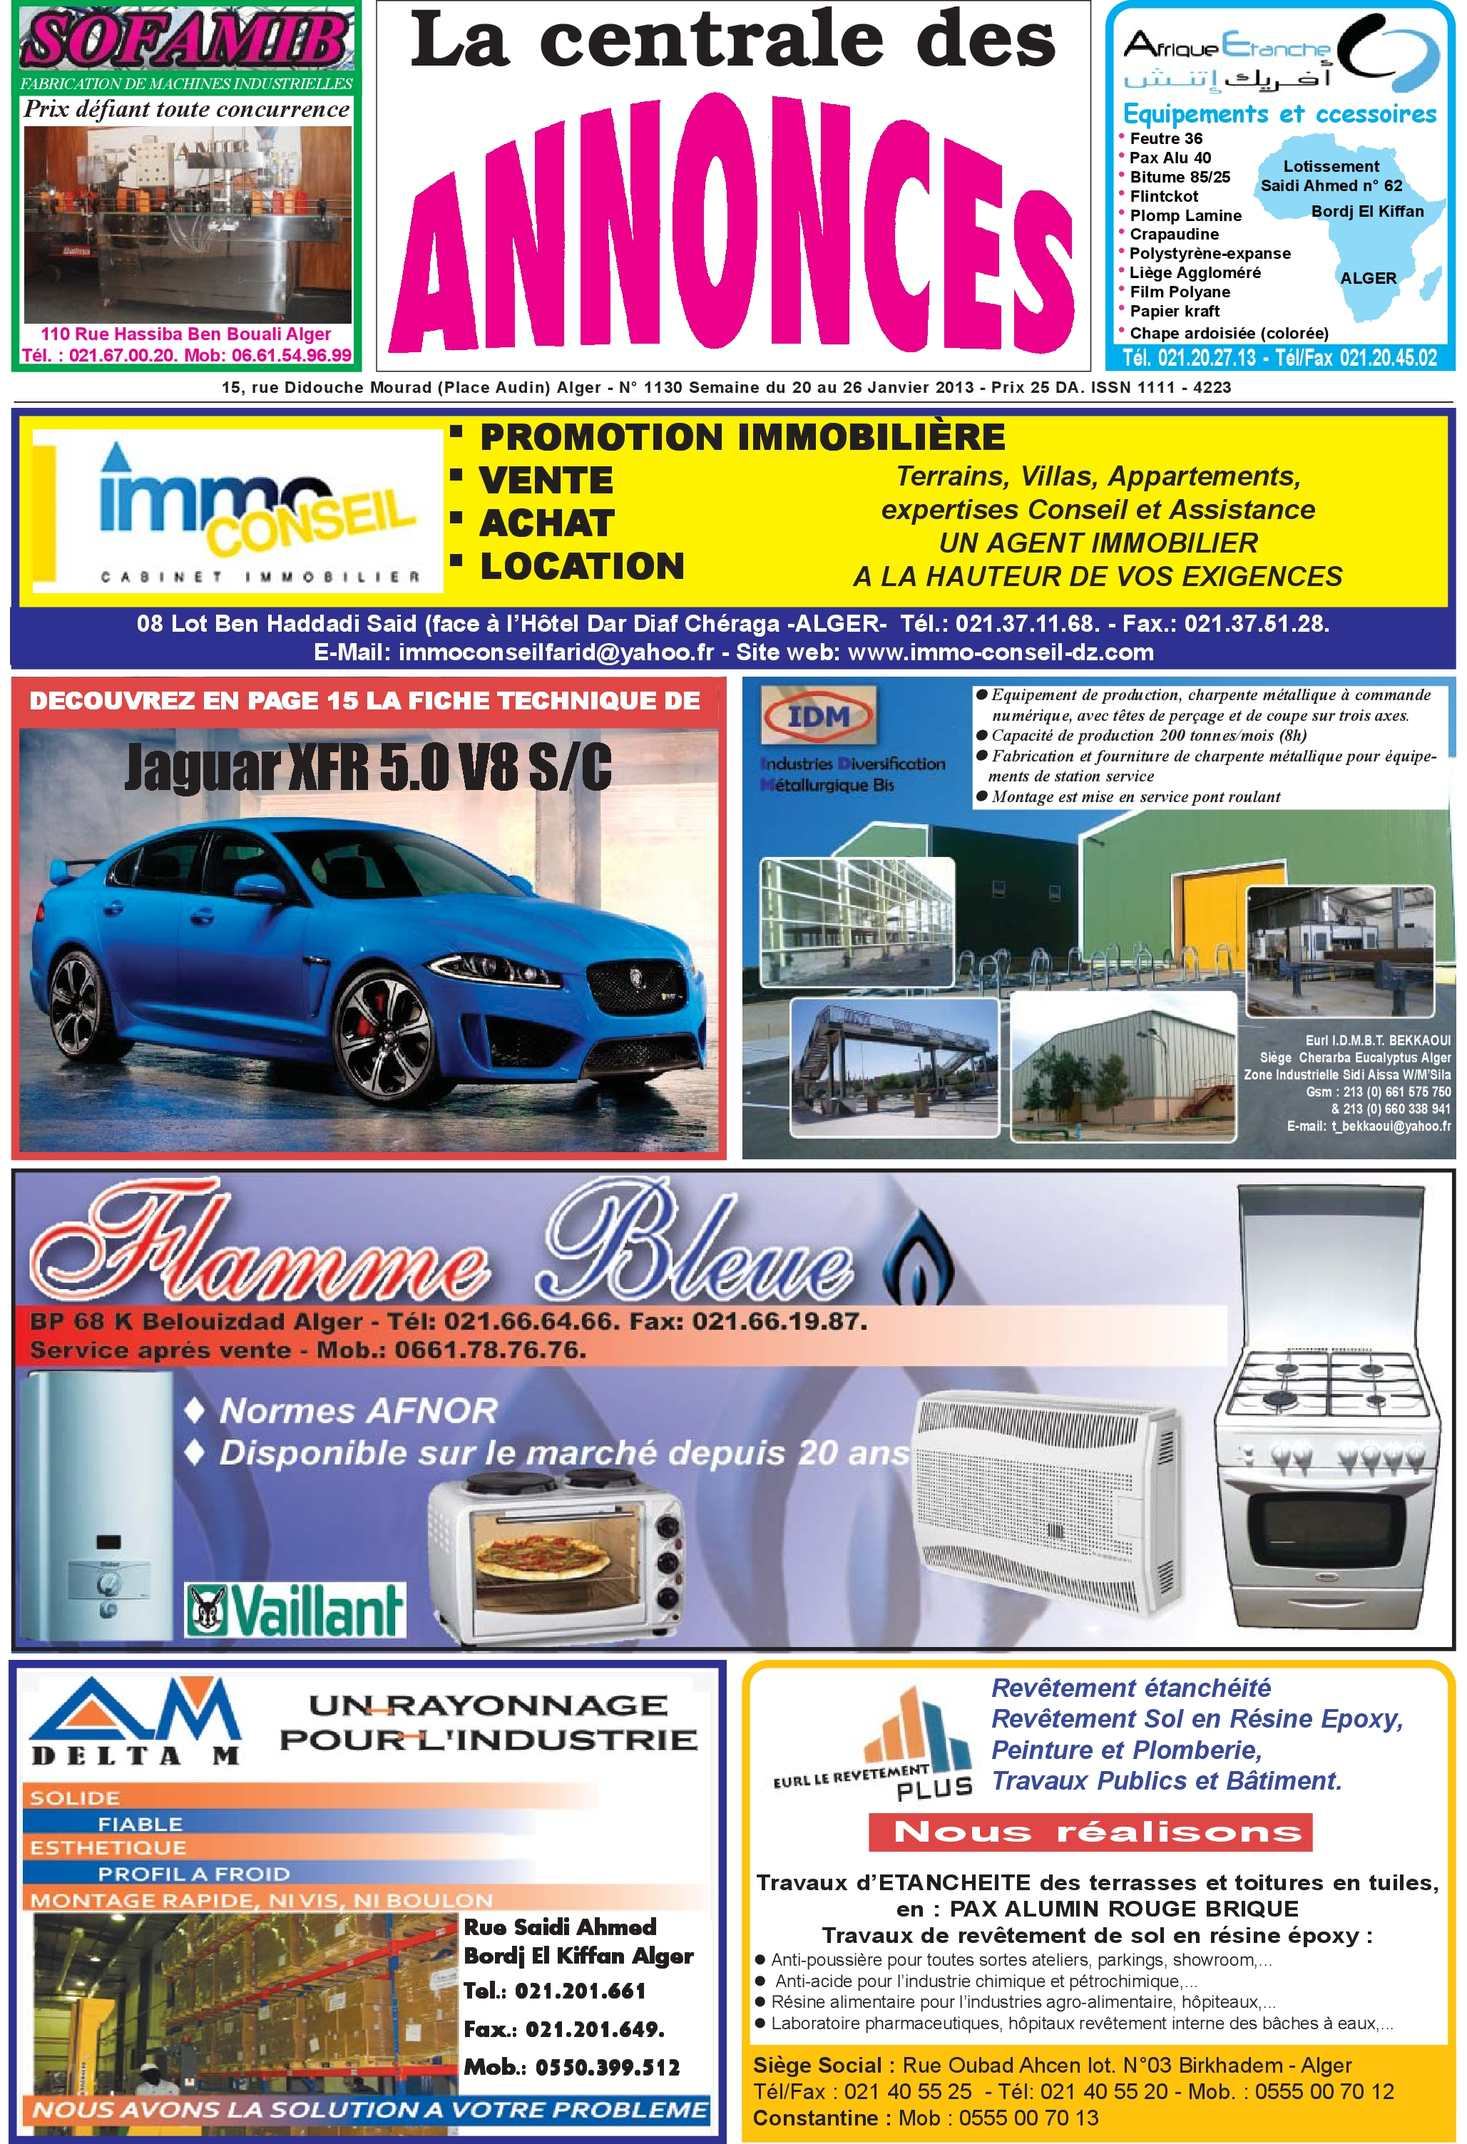 Co femmes location immobilier Algerie